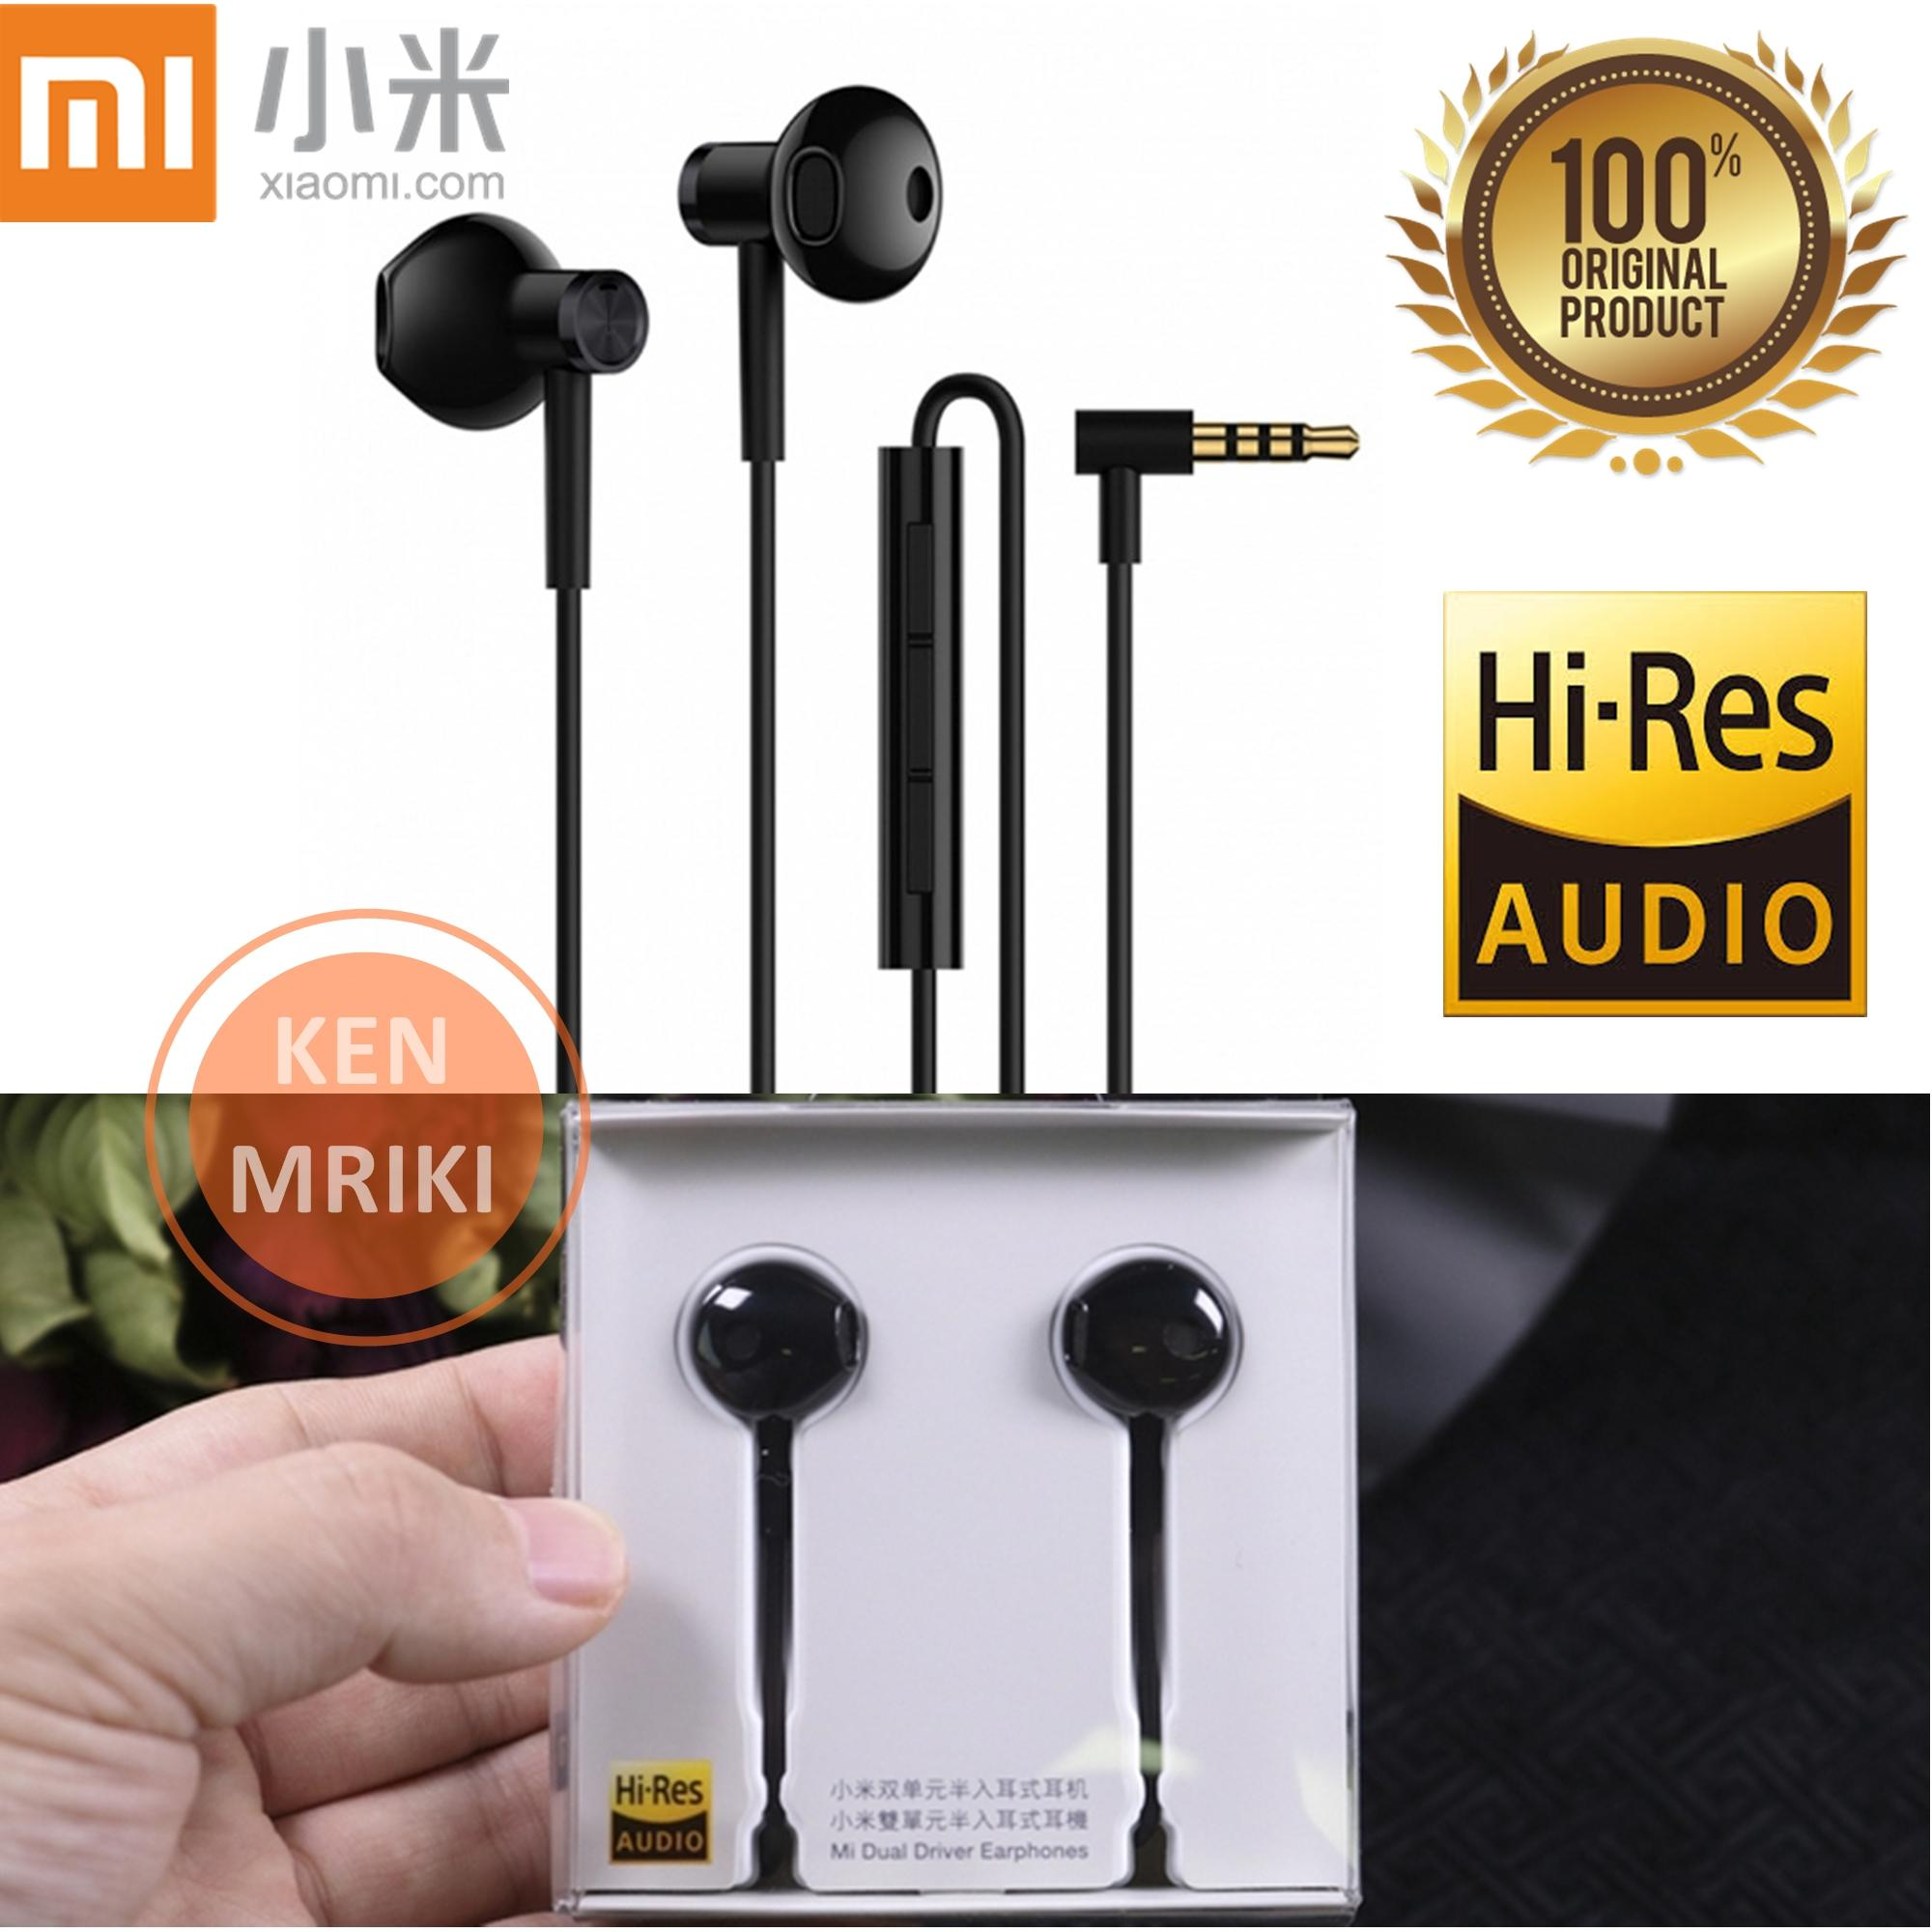 Headset / Earphone / Handsfree Hybrid Dual Driver Earphone Hi-Res Audio L-Plug 3.5mm Compatible XIAOMI / SAMSUNG / OPPO - Hitam